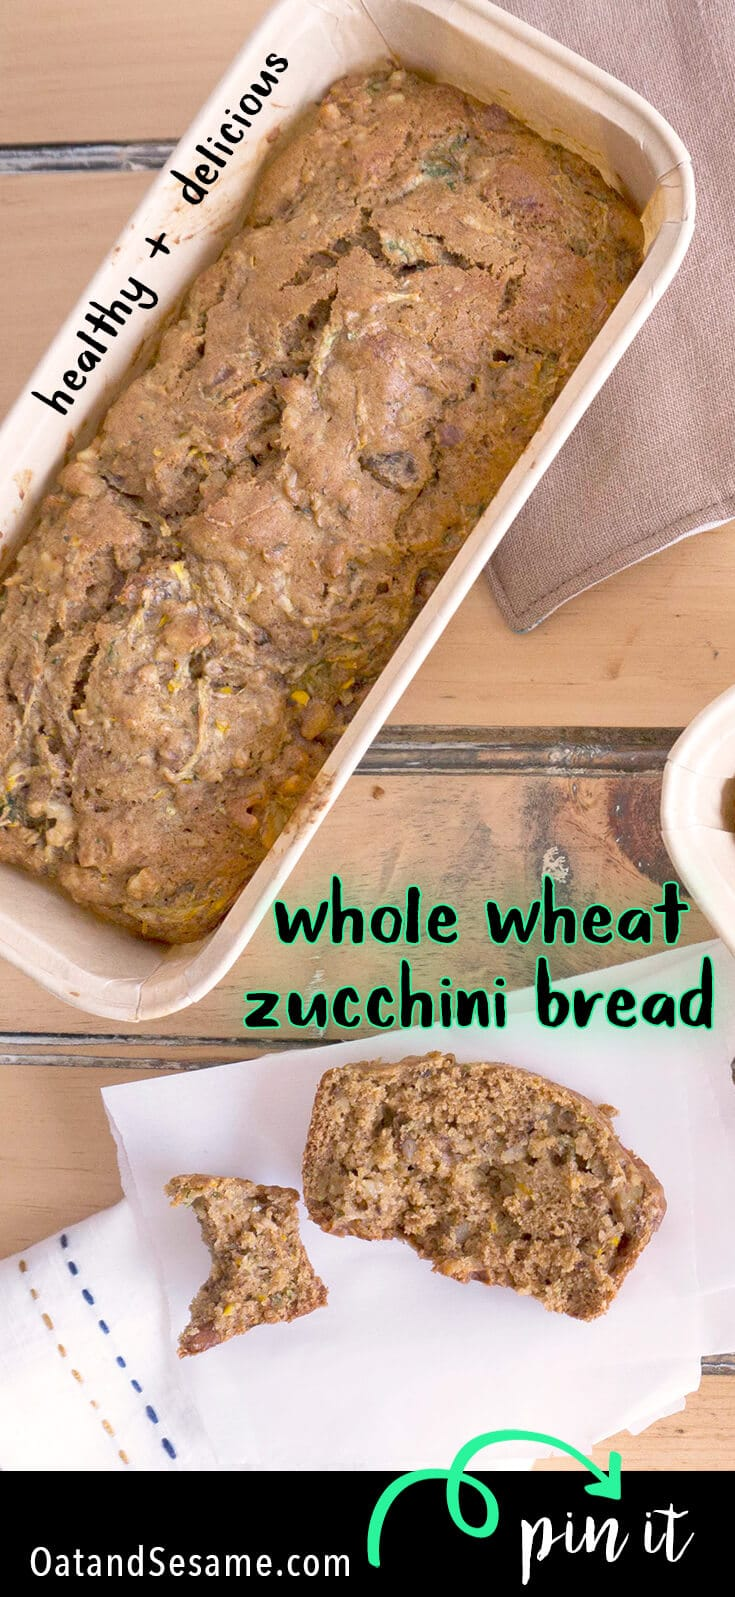 When Zucchini Season is at its high, you'll need to start making zucchini bread! This Whole Wheat Zucchini Walnut Bread is delicious and healthy. It also works great as the base for Zucchini Bread French toast! | BREAD | BAKING | WHOLE GRAIN | Recipe at OatandSesame.com